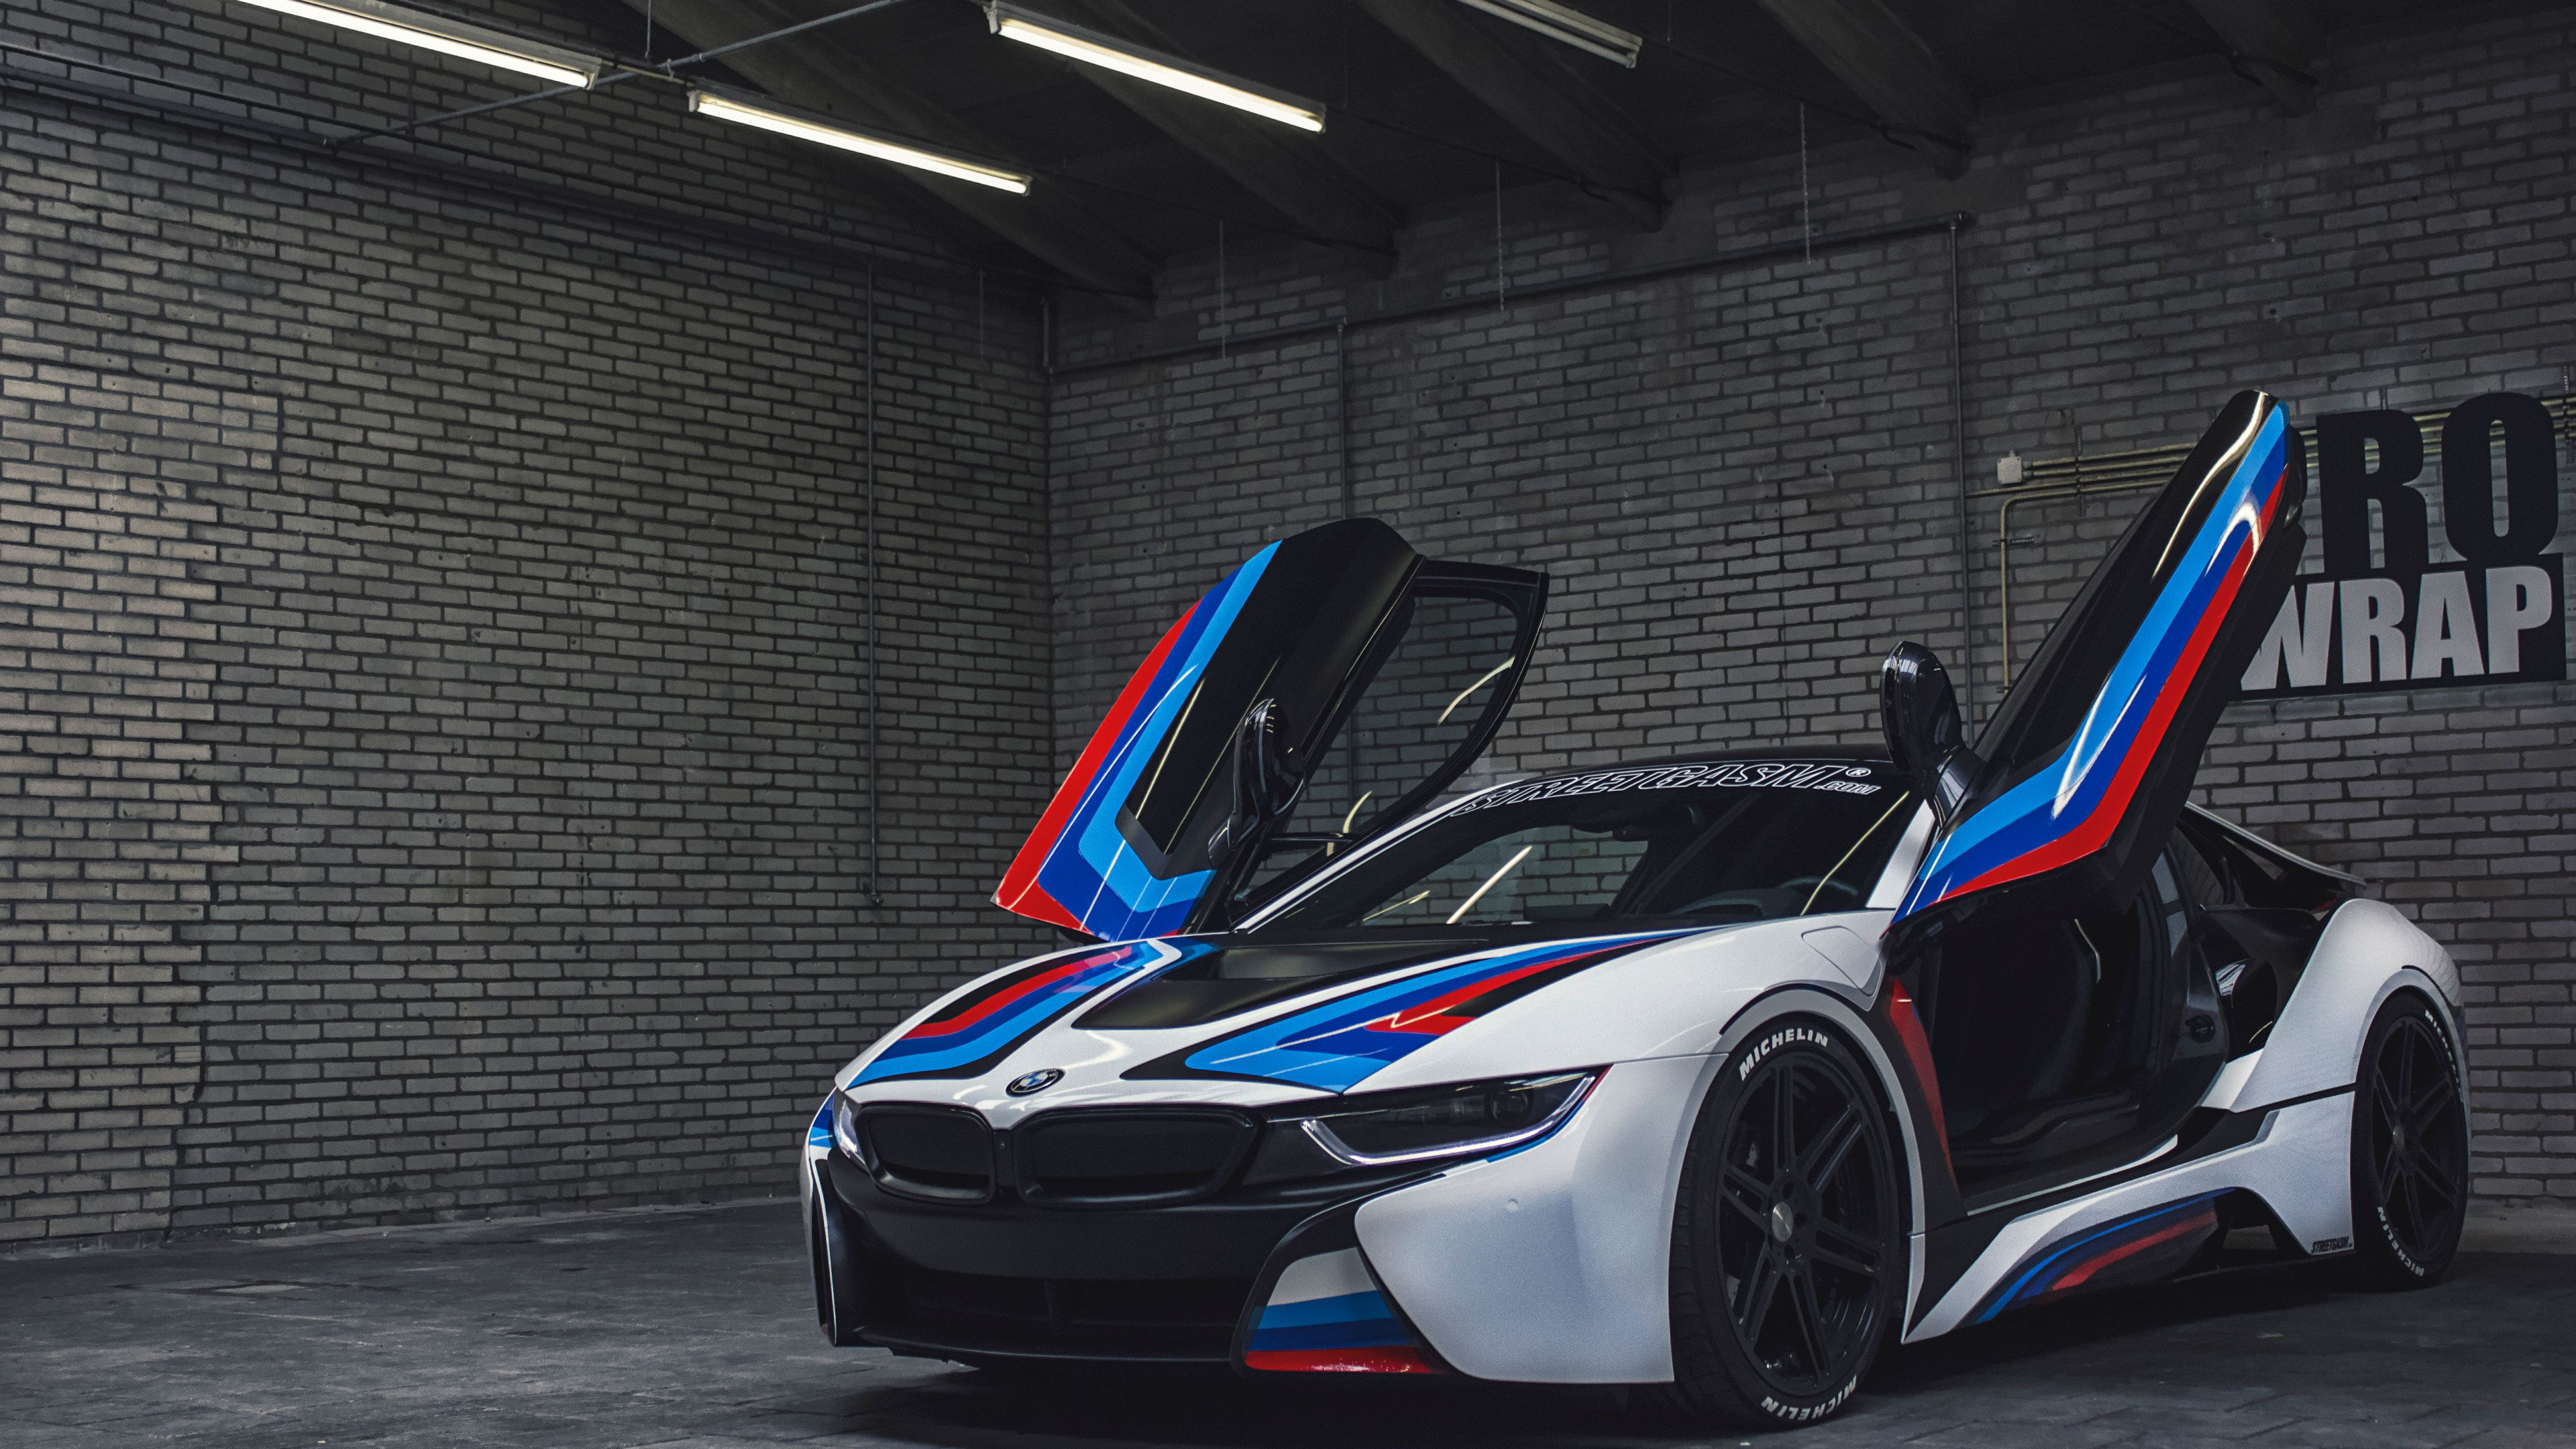 Bmw I8 2017 4k Hd Wallpapers Cars Wallpapers Bmw Wallpapers Bmw